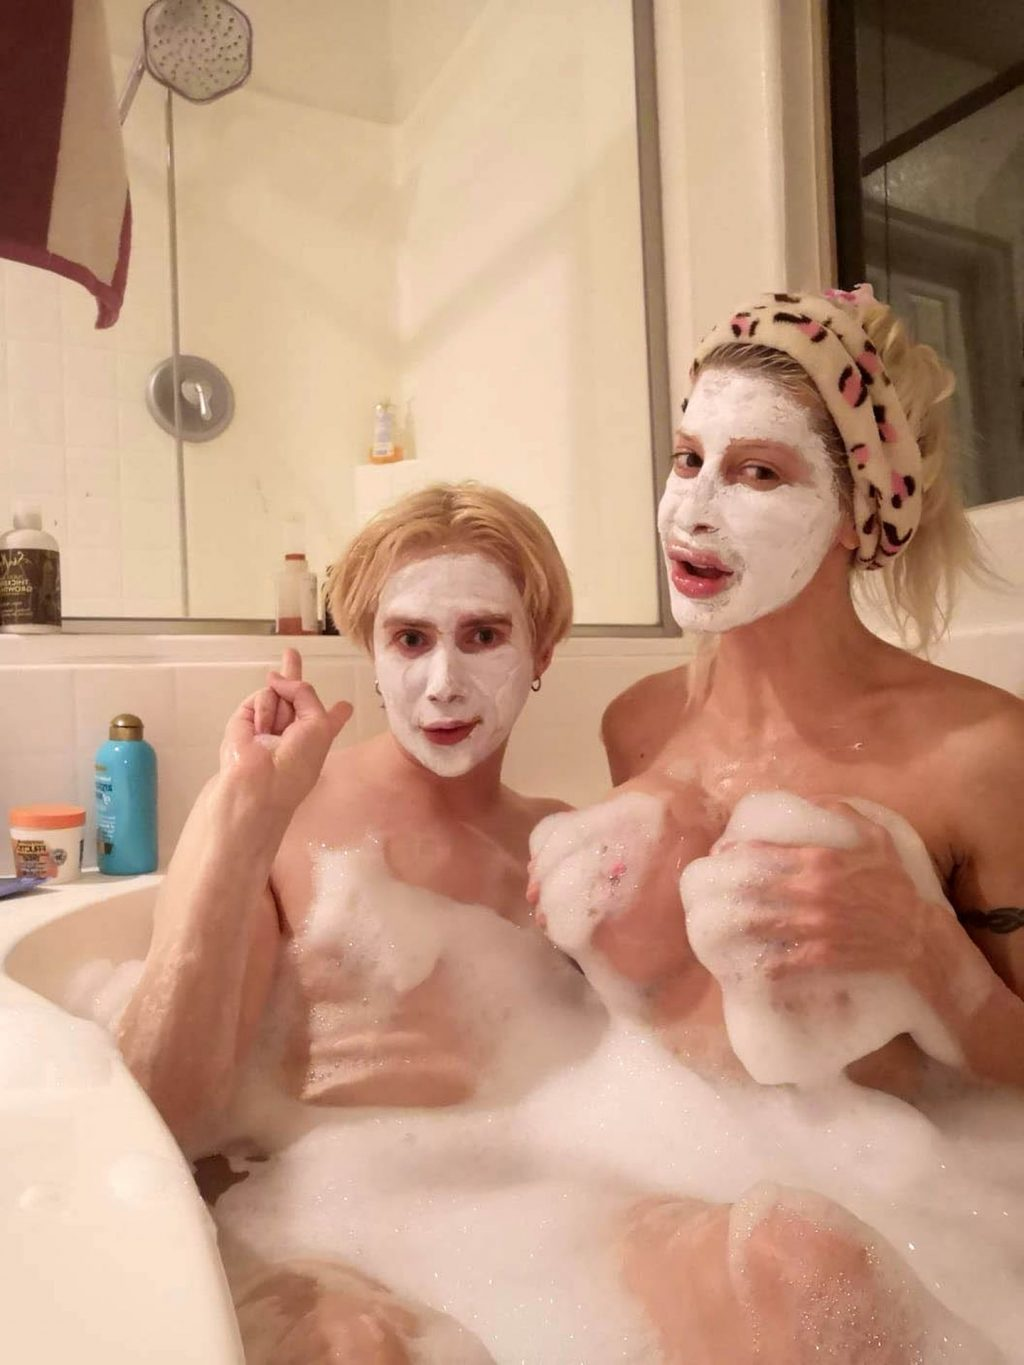 Frenchy Morgan & Oli London Have a Personal Spa Day (6 Photos)